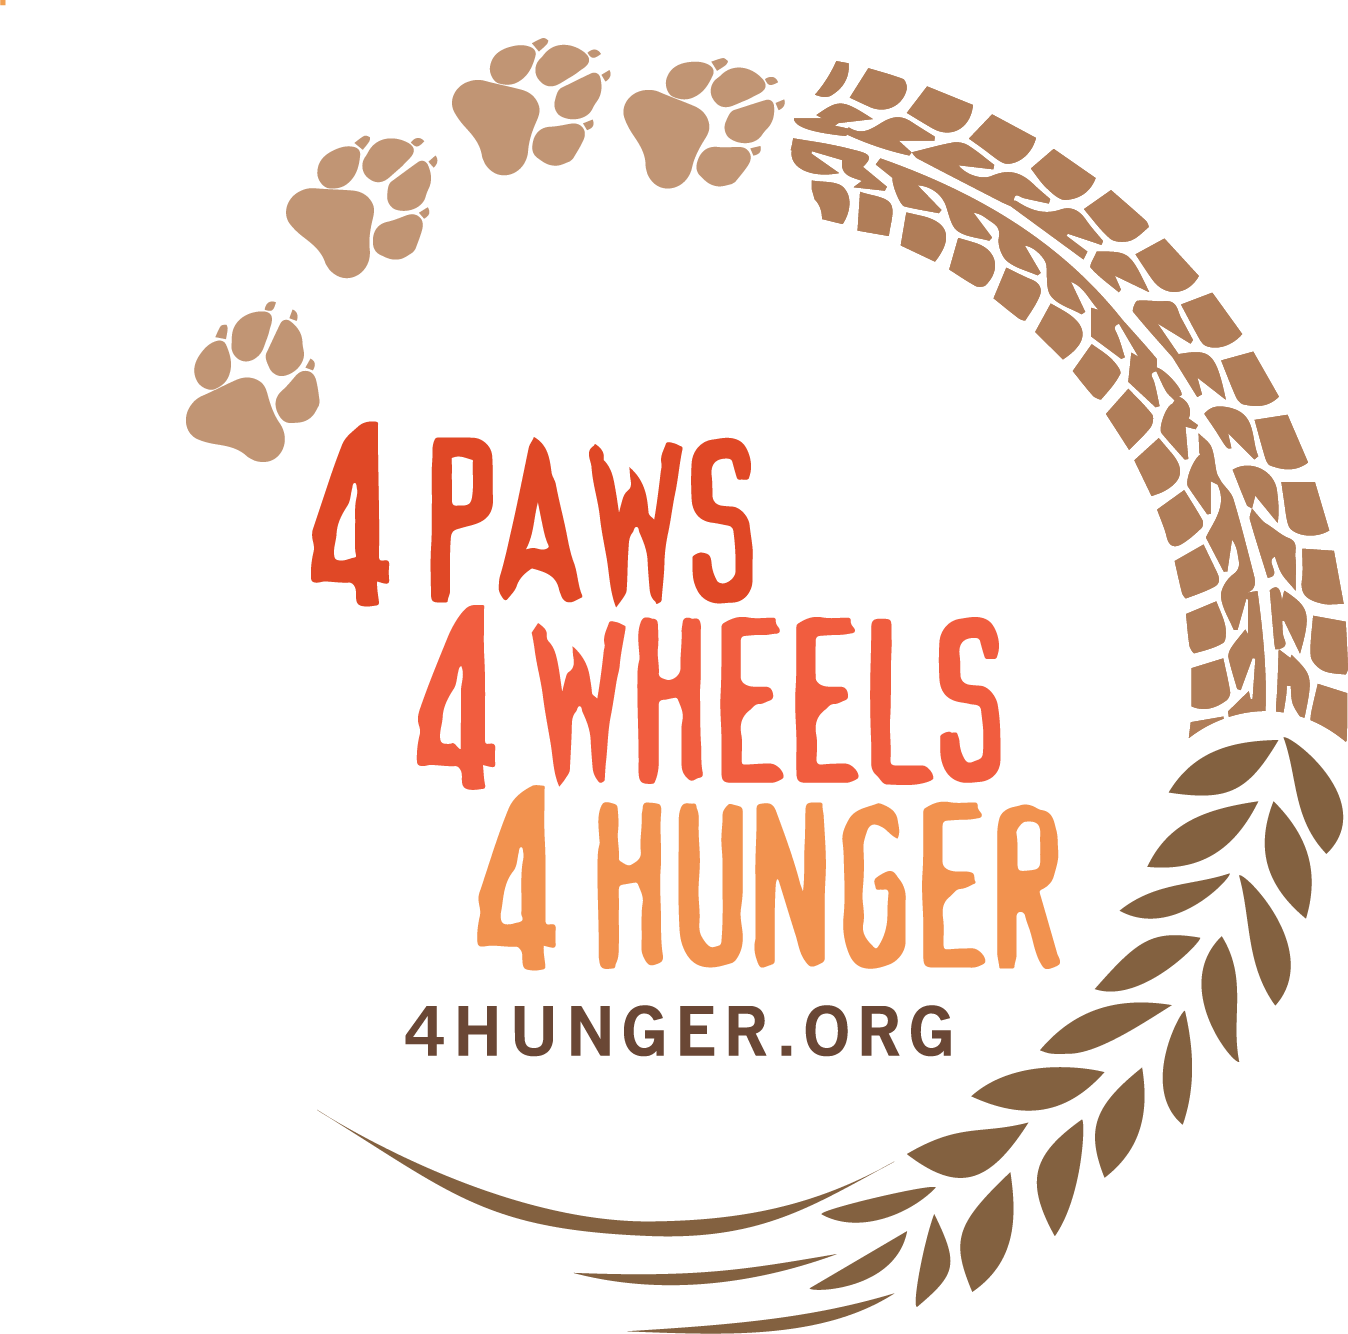 4Paws 4Wheels 4Hunger